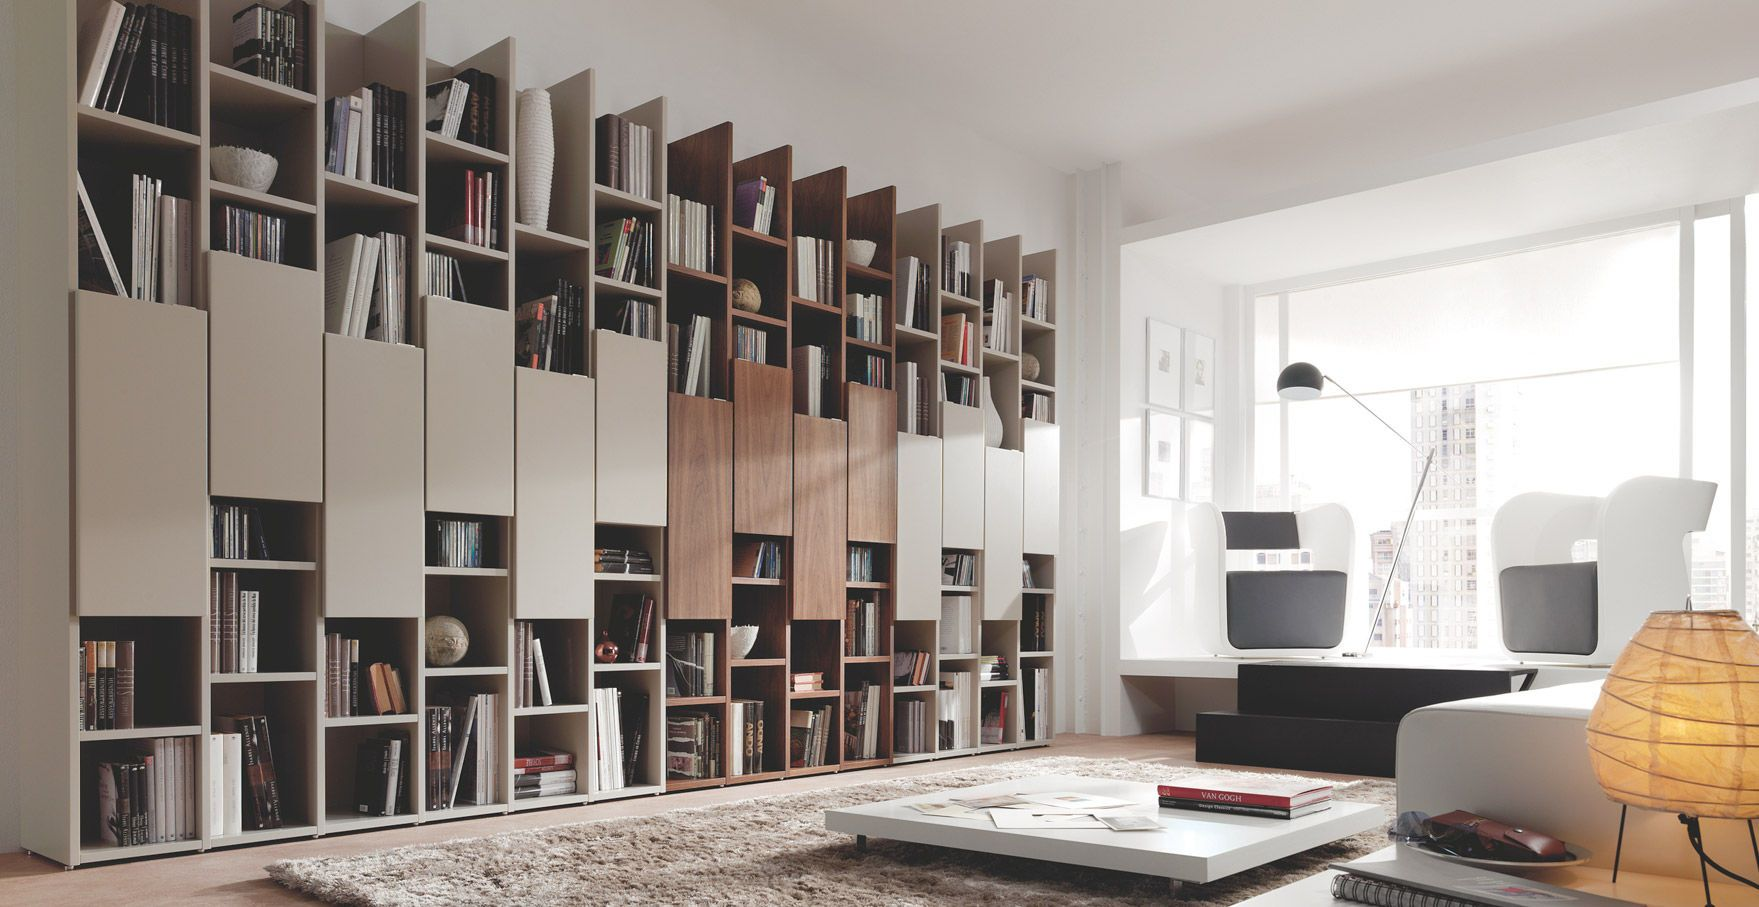 biblioth que murale contemporaine m5 piferrer. Black Bedroom Furniture Sets. Home Design Ideas